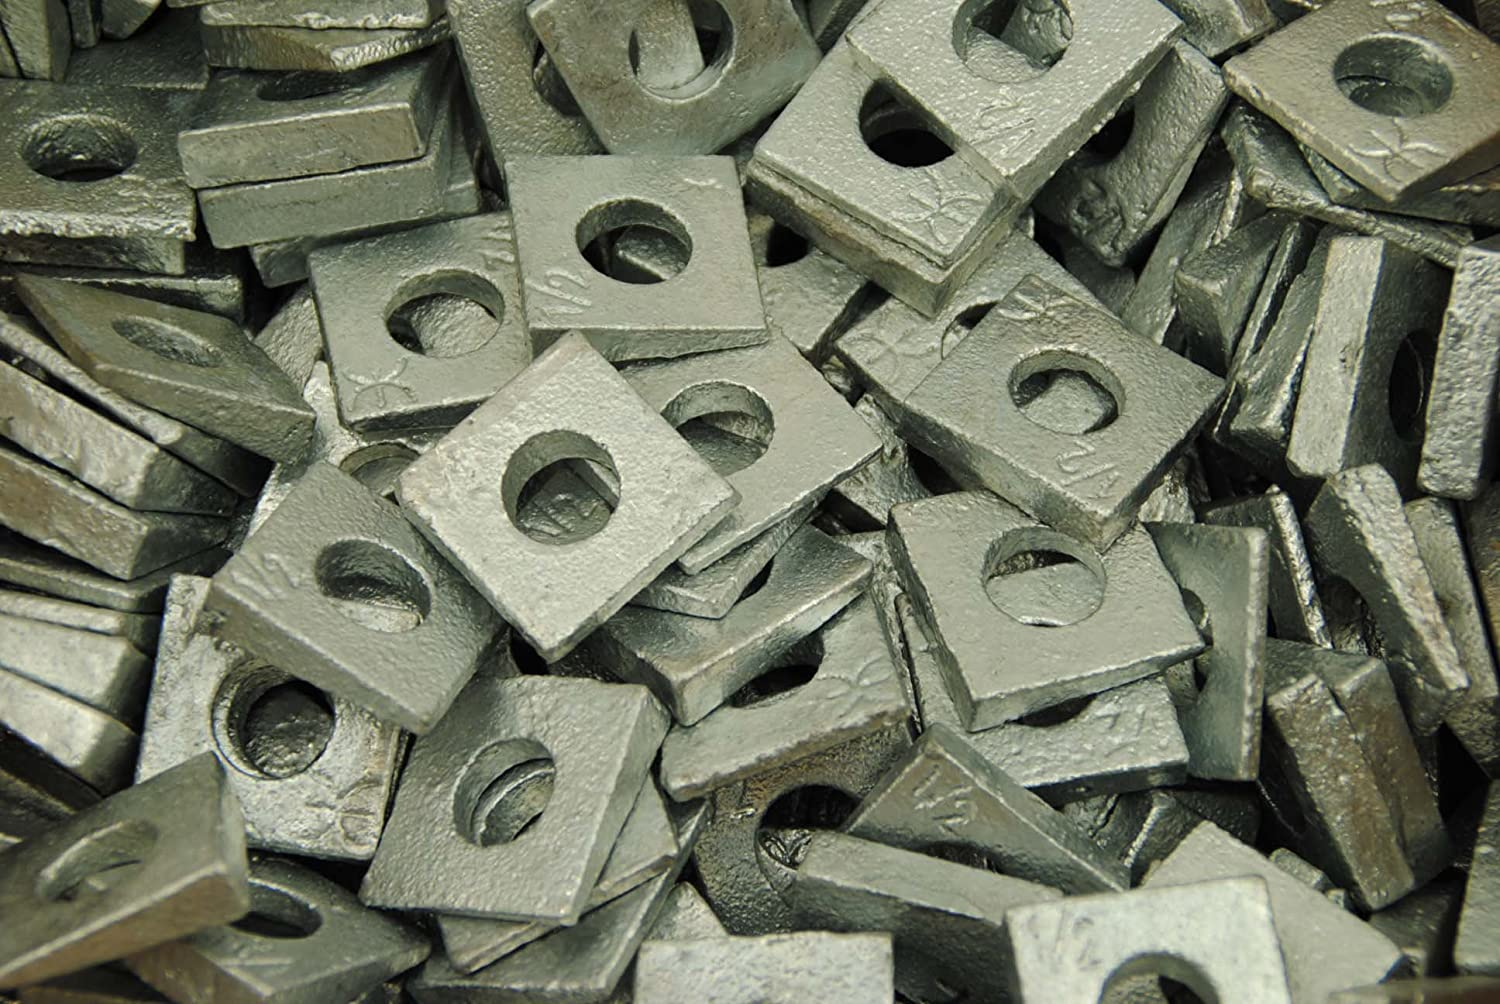 Quality inspection 100 Galvanized Malleable Regular dealer 1 2 I-Beam Washers Flang Square Bevel